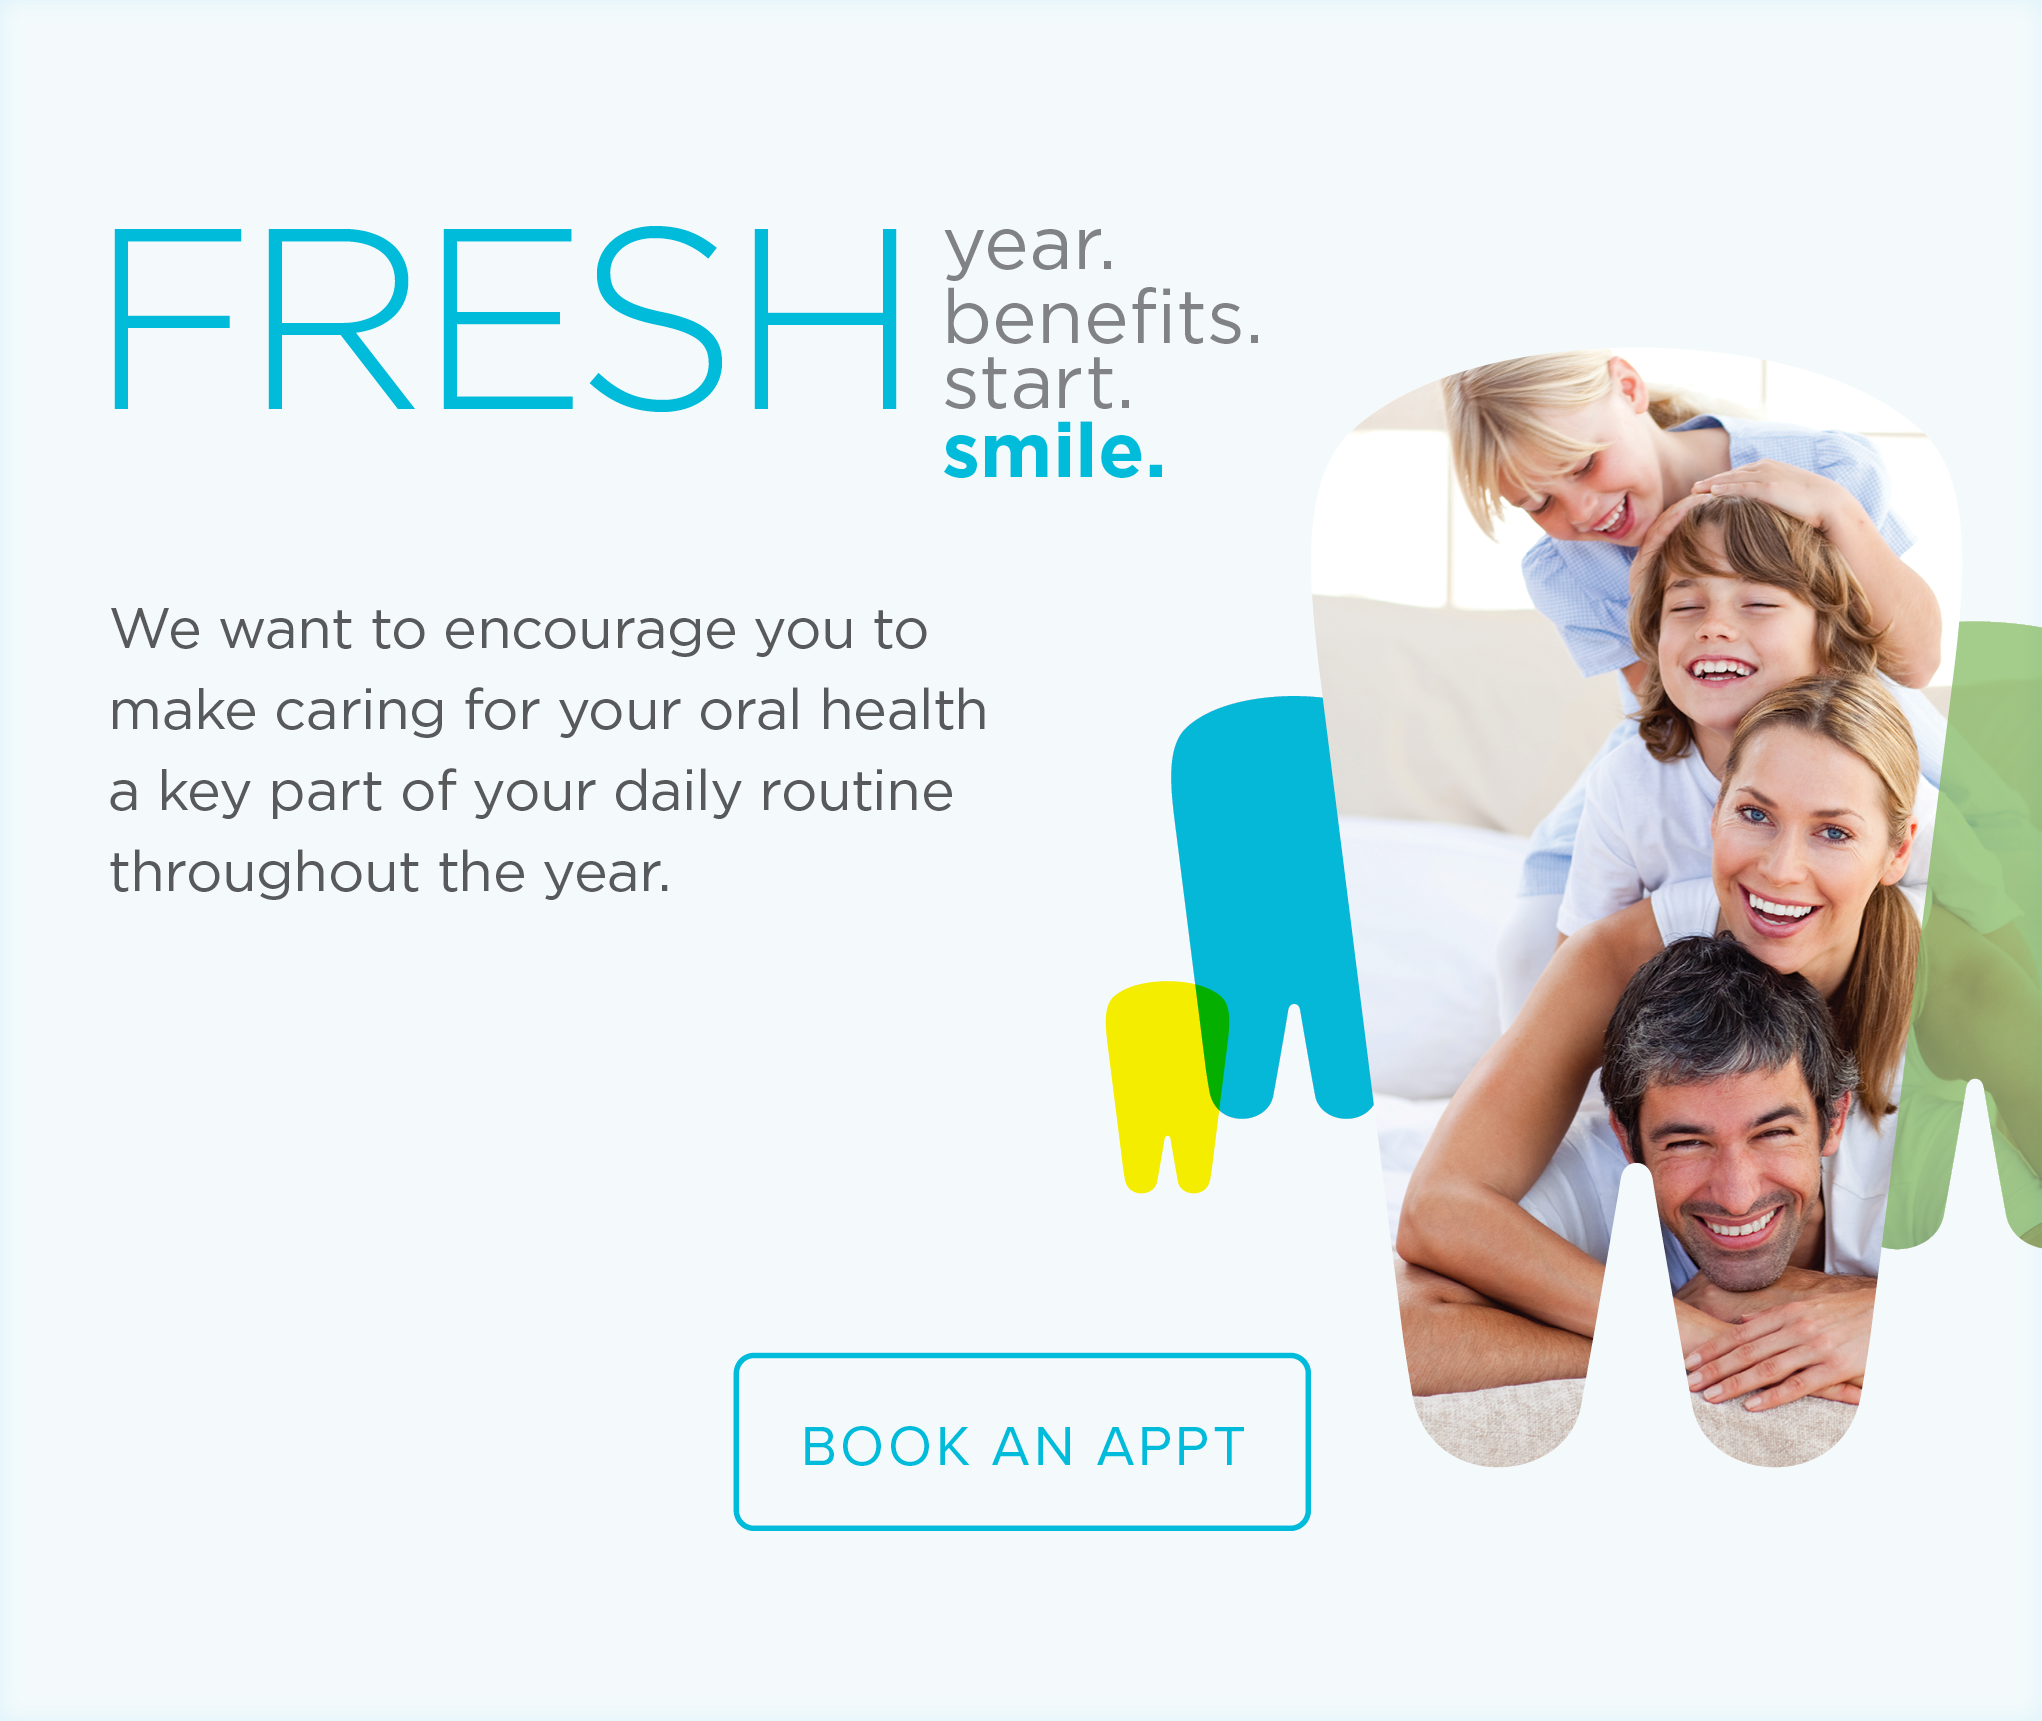 Valencia Dental Group and Orthodontics - Make the Most of Your Benefits